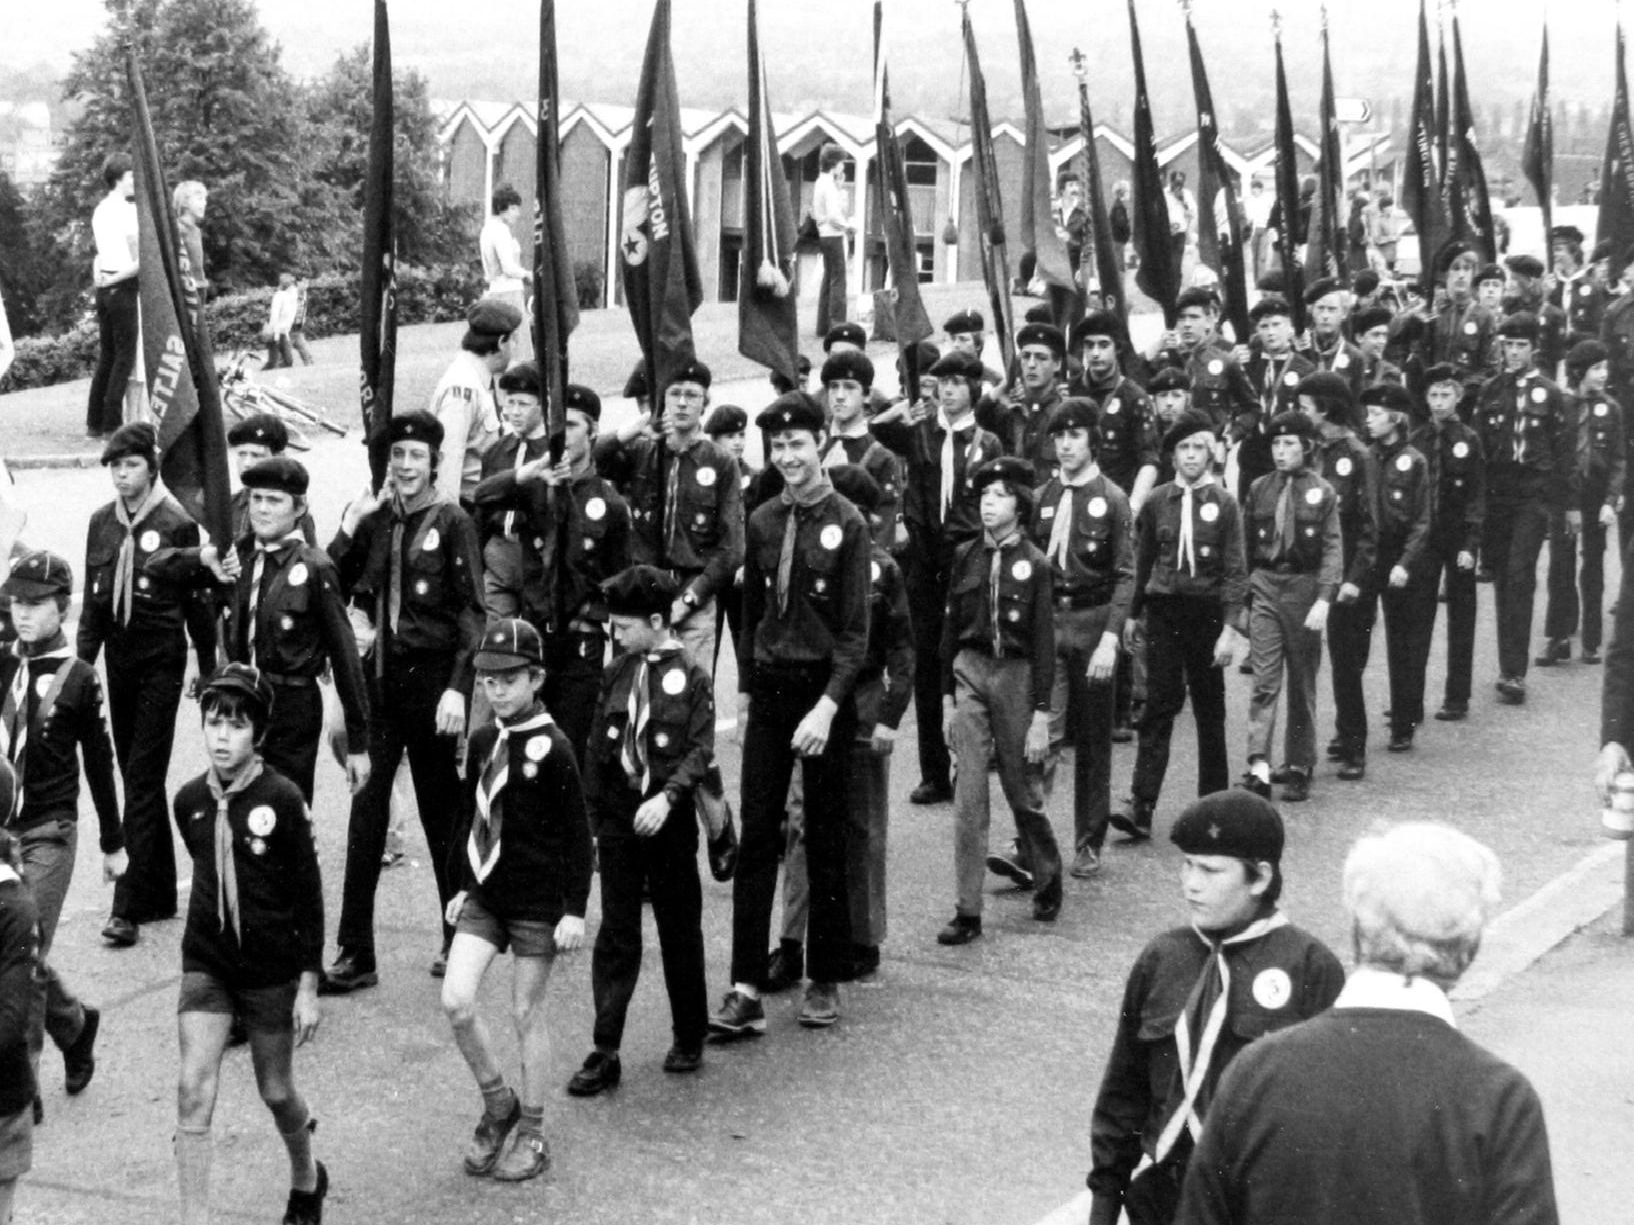 Scouting feature - 1982 - 75 years of scouting milestone flag parade through Chesterfield